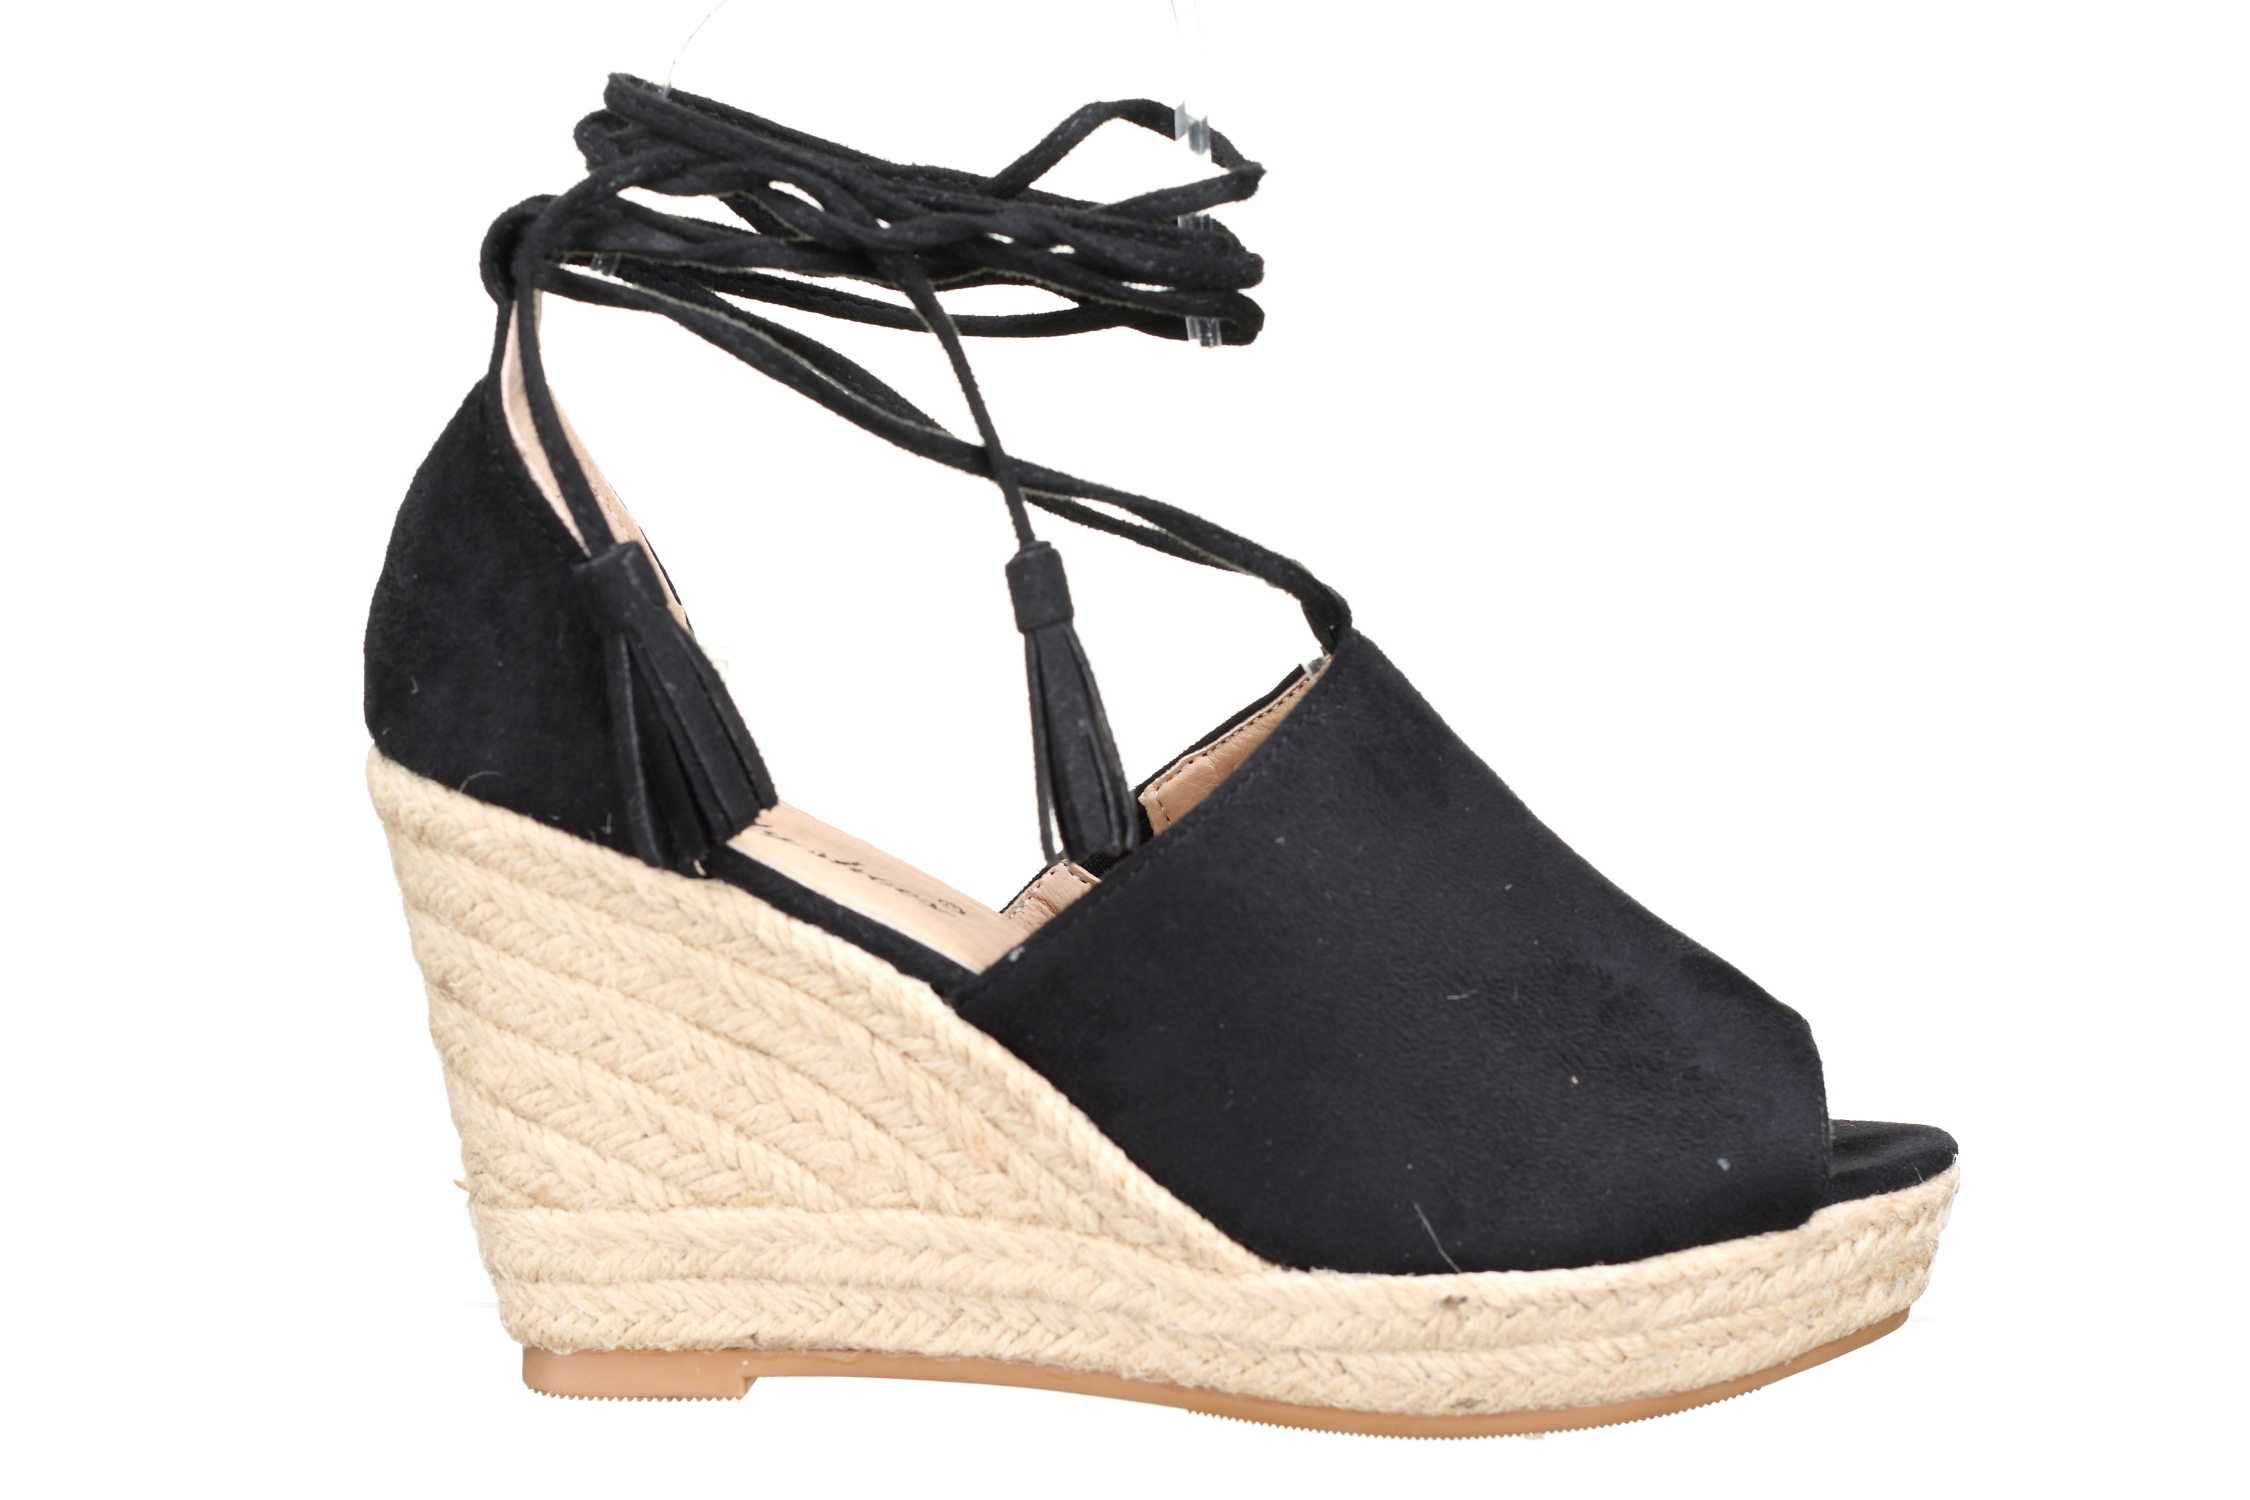 http://www.leadermode.com/171240/lily-shoes-202-black.jpg